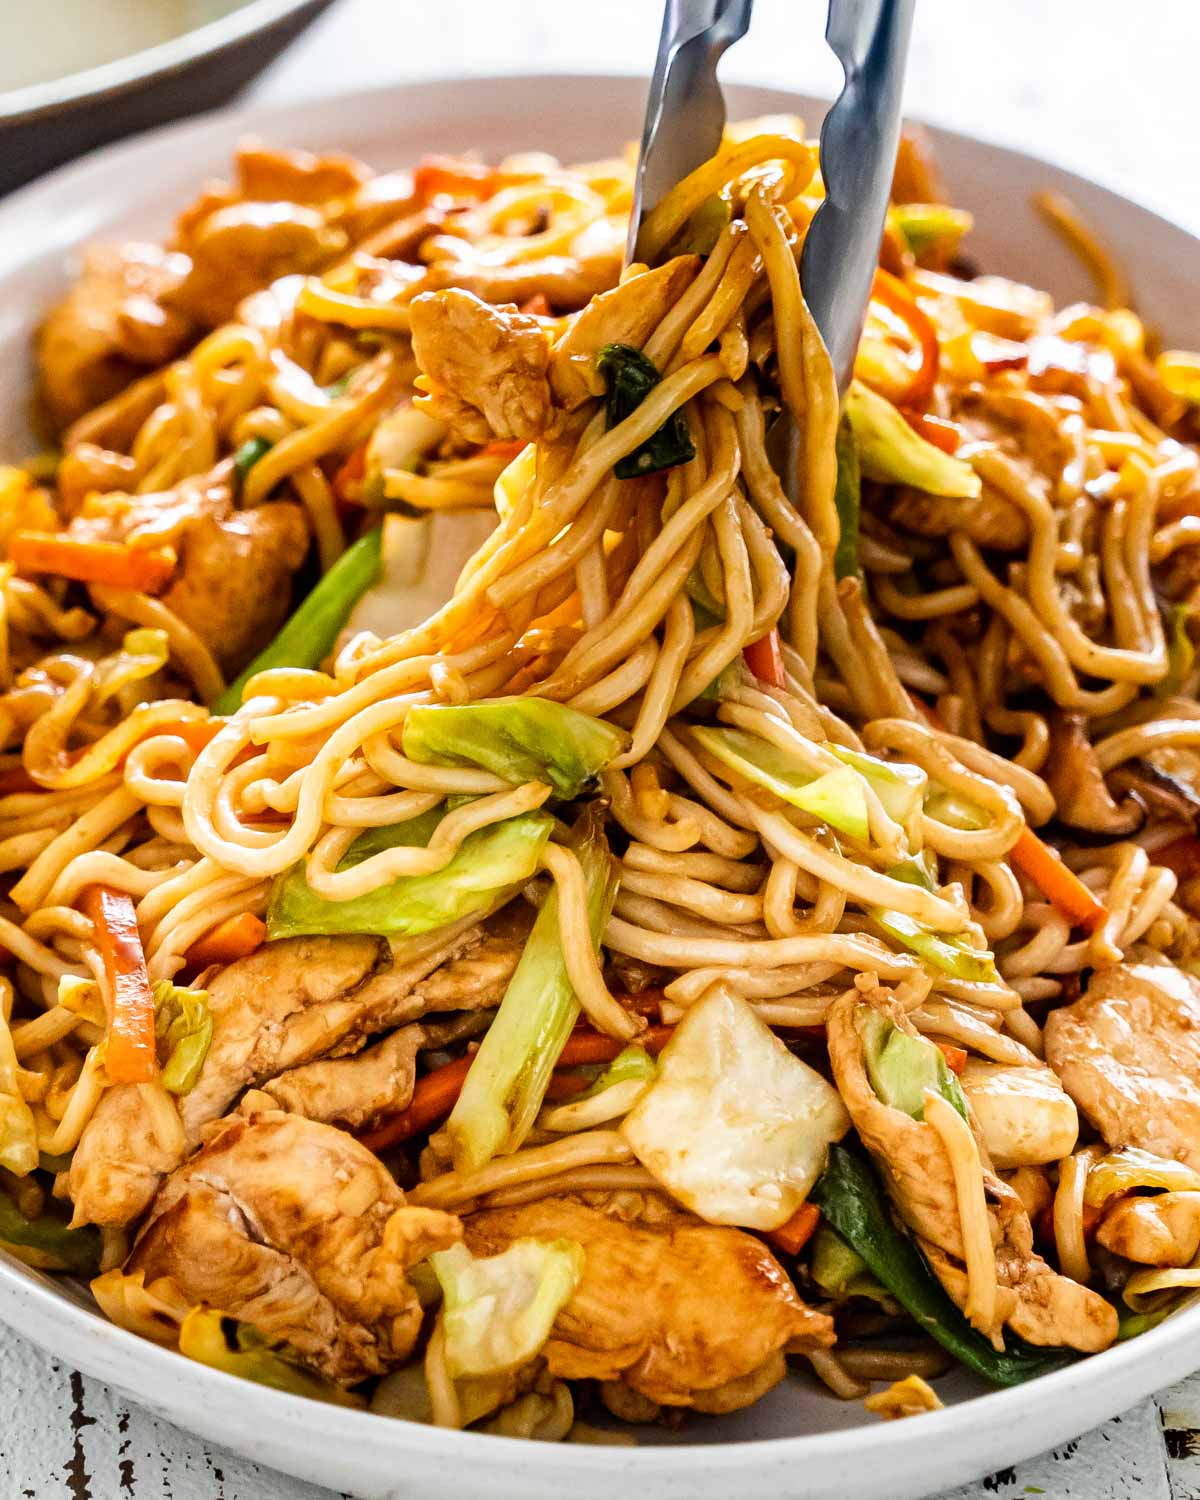 yakisoba noodles with chicken and vegetables in a large serving platter.